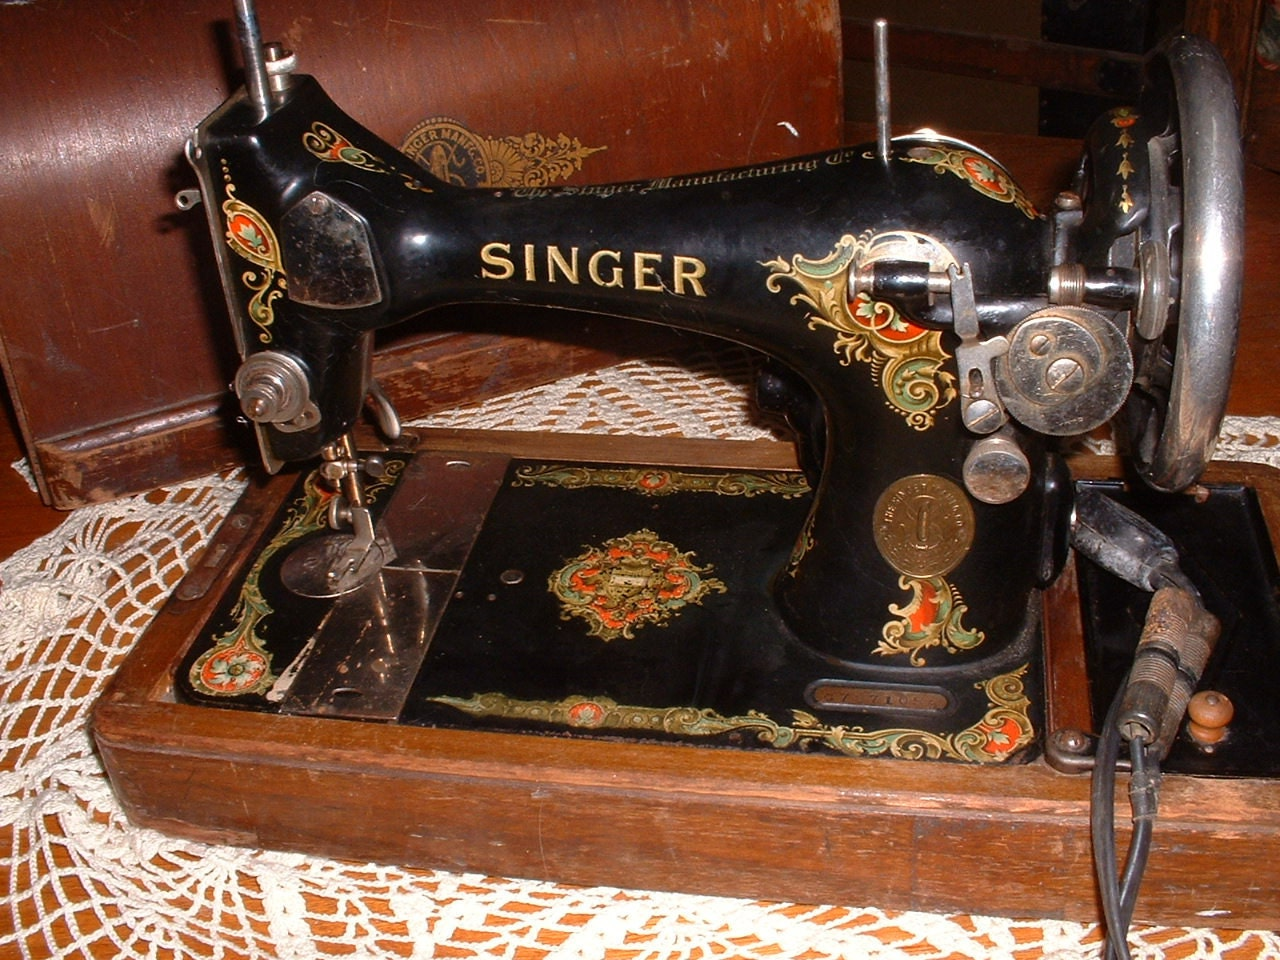 Vintage Singer Portable Sewing Machine in Bent Wood Case 1920